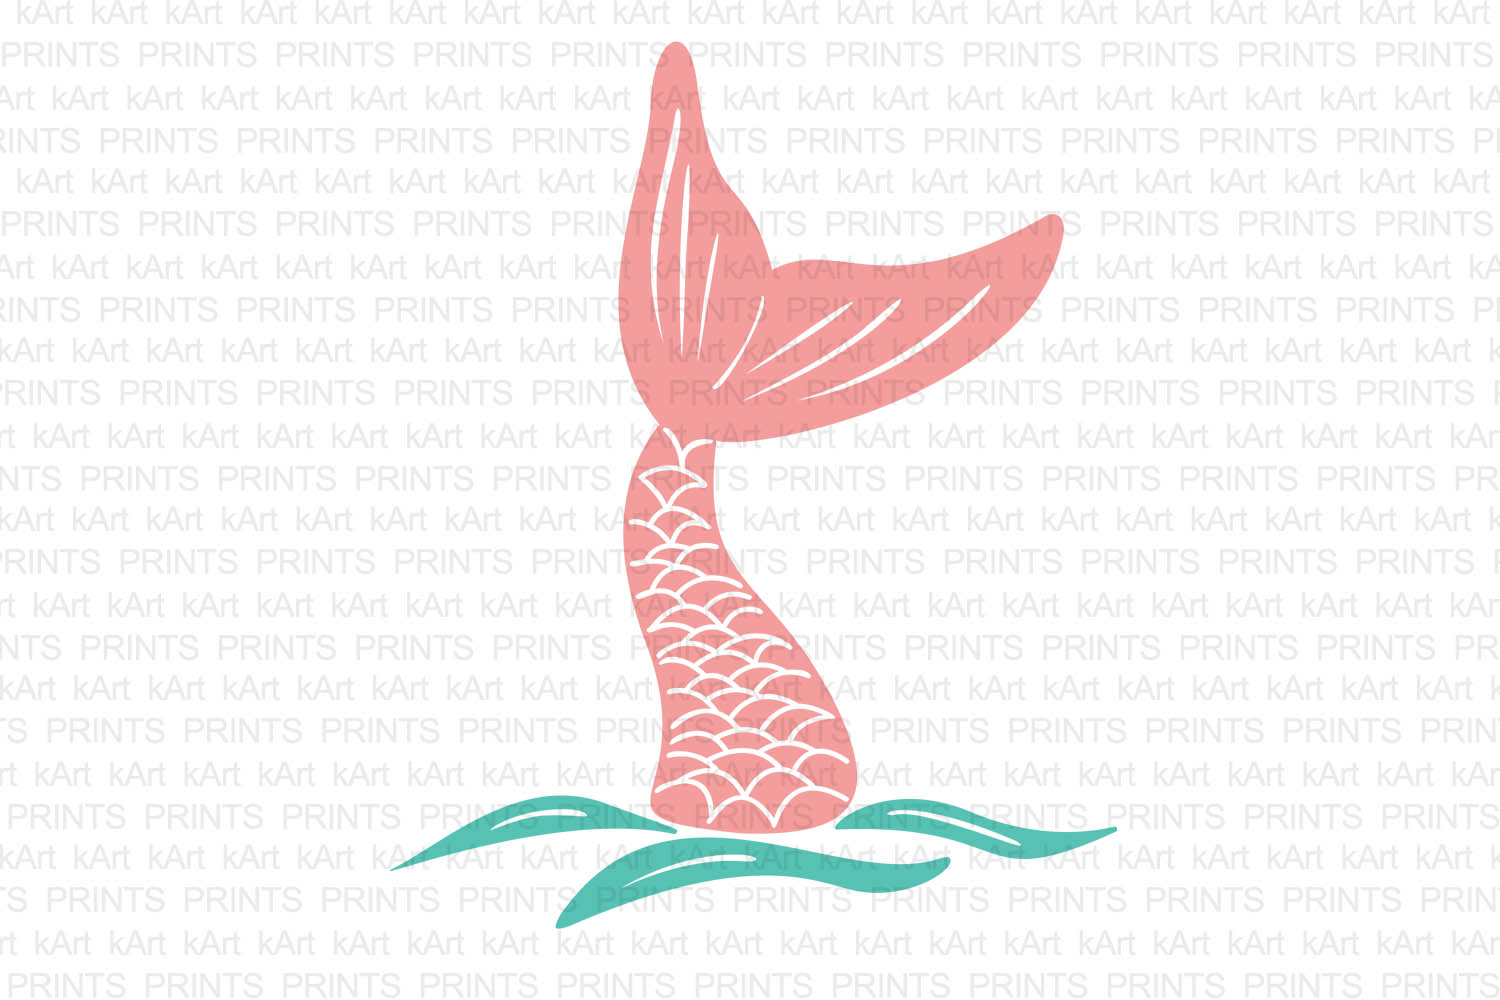 mermaid tail svg, hand drown mermaid tail, fish tail svg, mermaid iron on, hand drawn svg, hand drawn art, hand drawn logo, dxf, png, jpeg example image 1